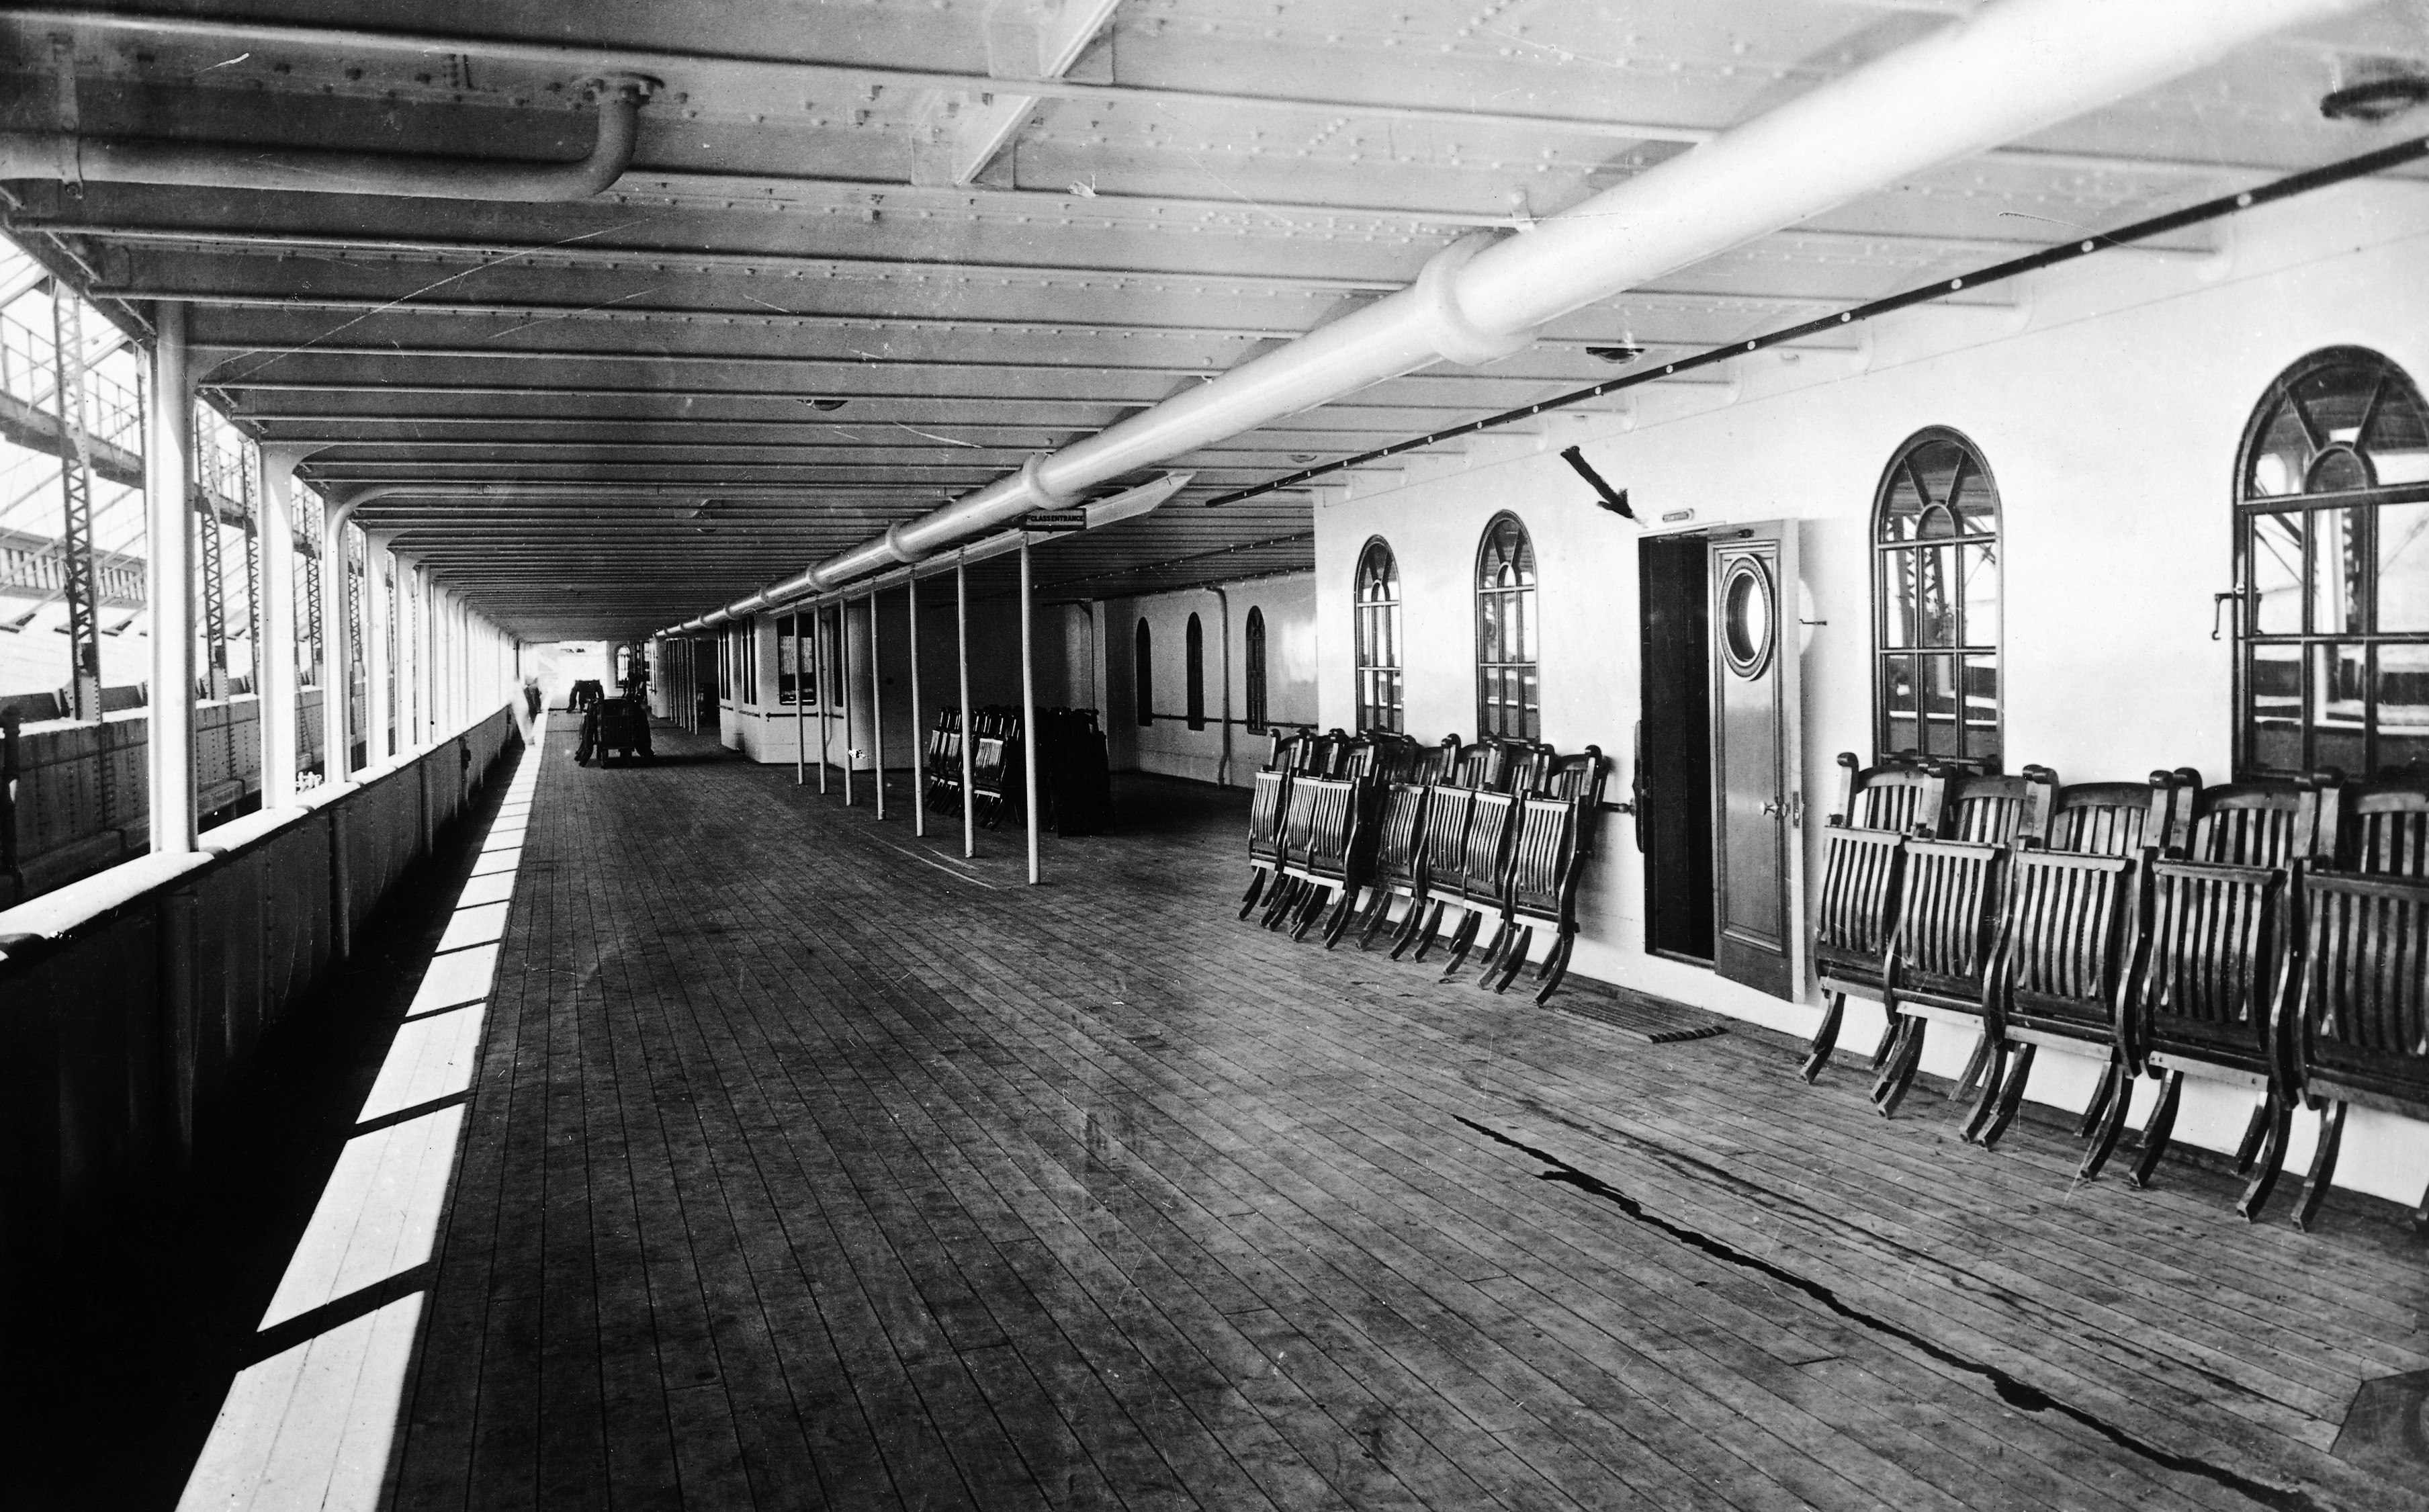 the deck and deck chairs on the Titanic Before and After